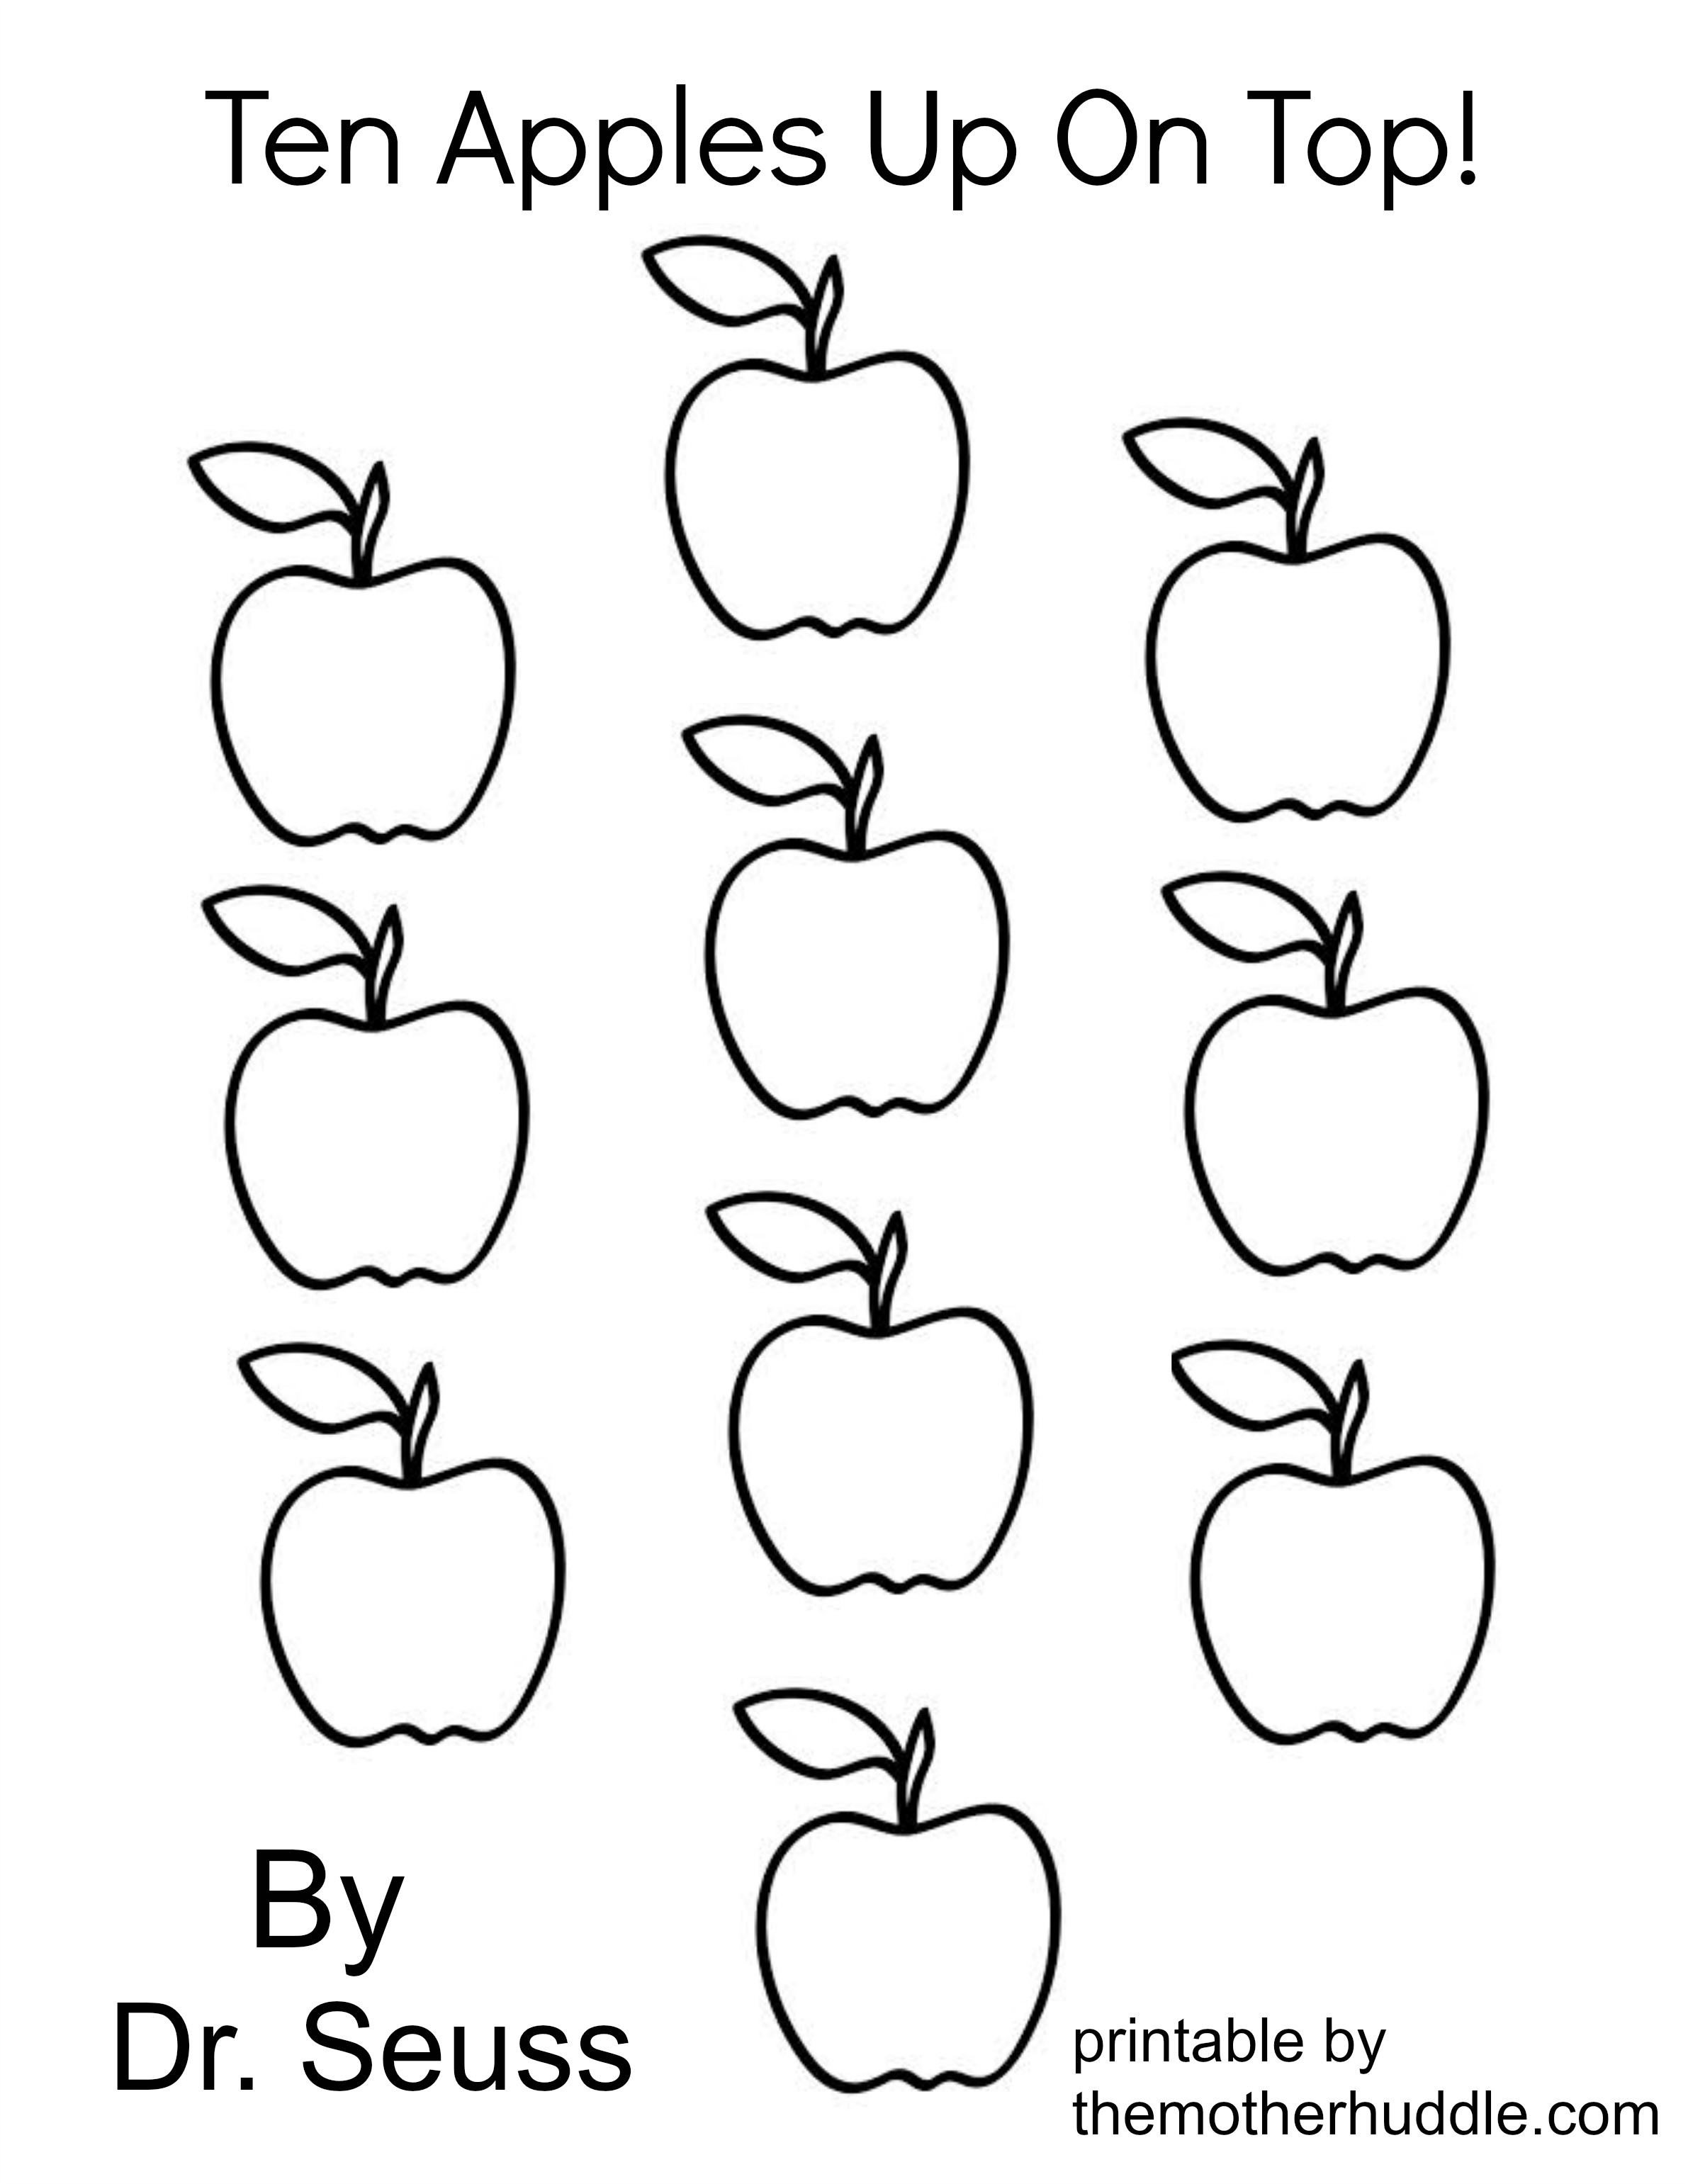 Dr Seuss Ten Apples On Top Coloring Page Coloring Pages